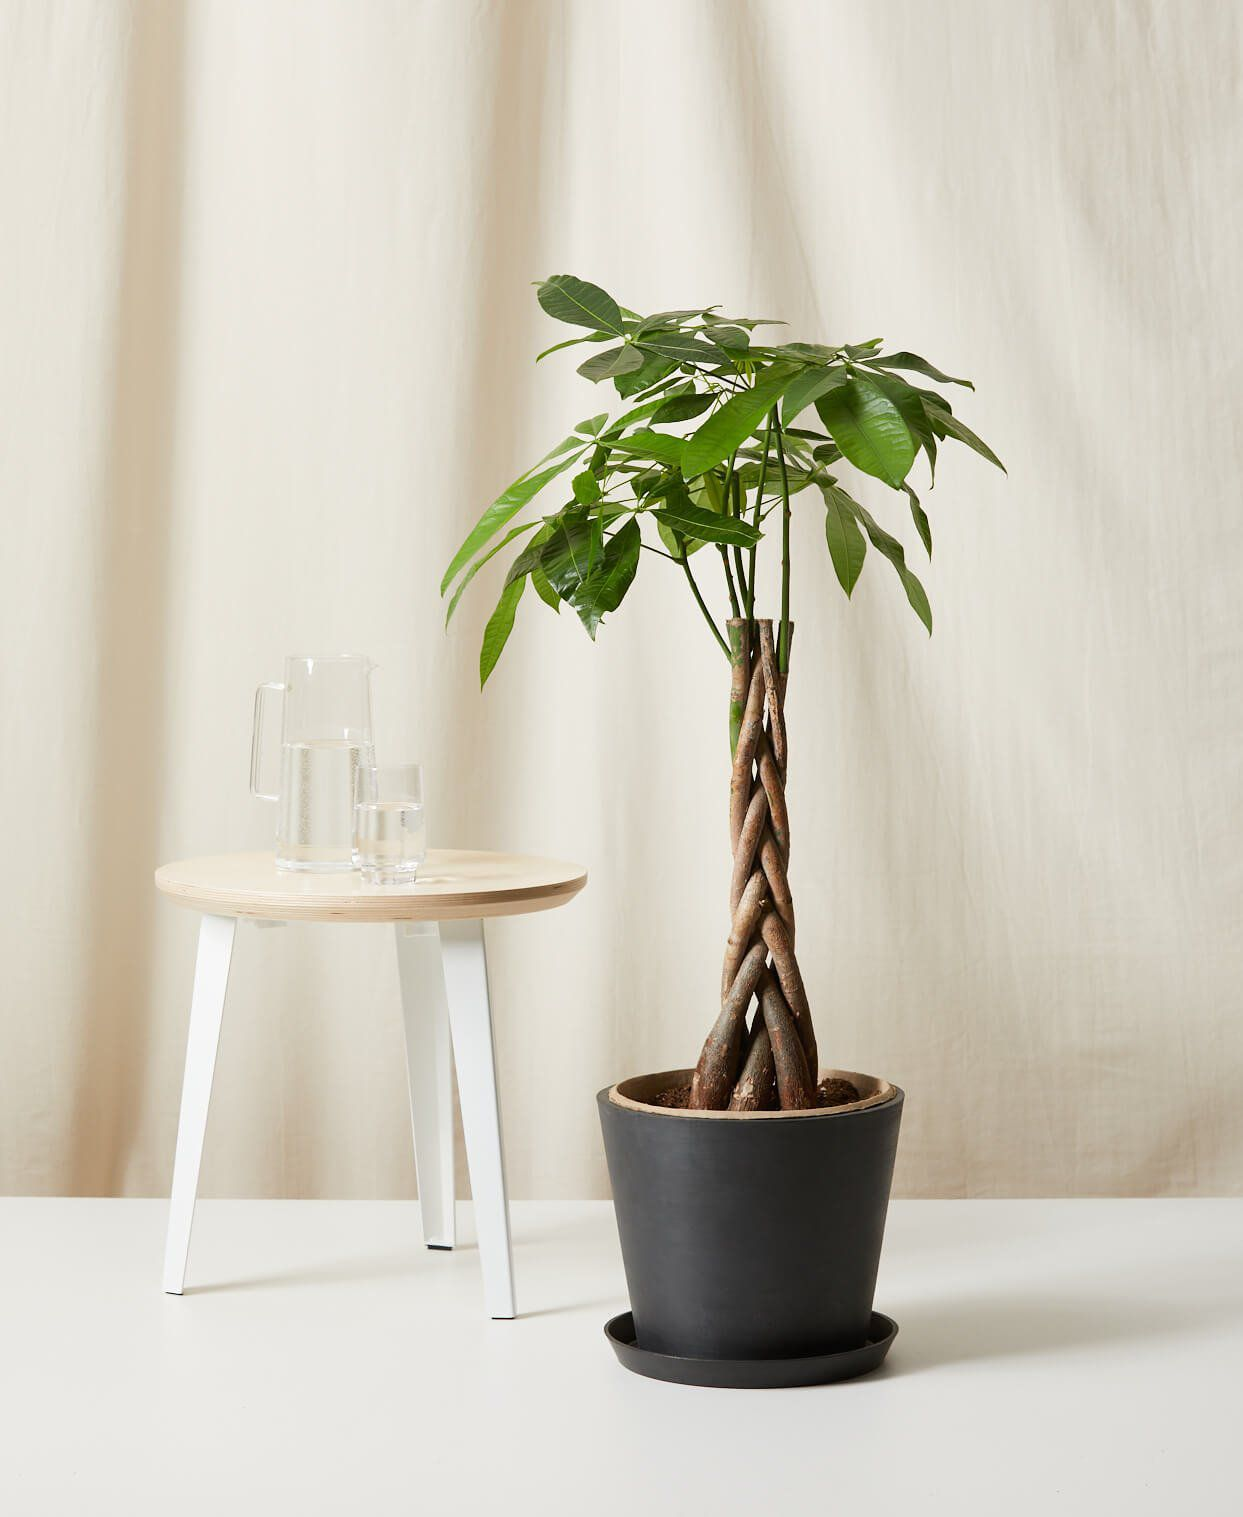 Money tree in a black pot next to a wood stool